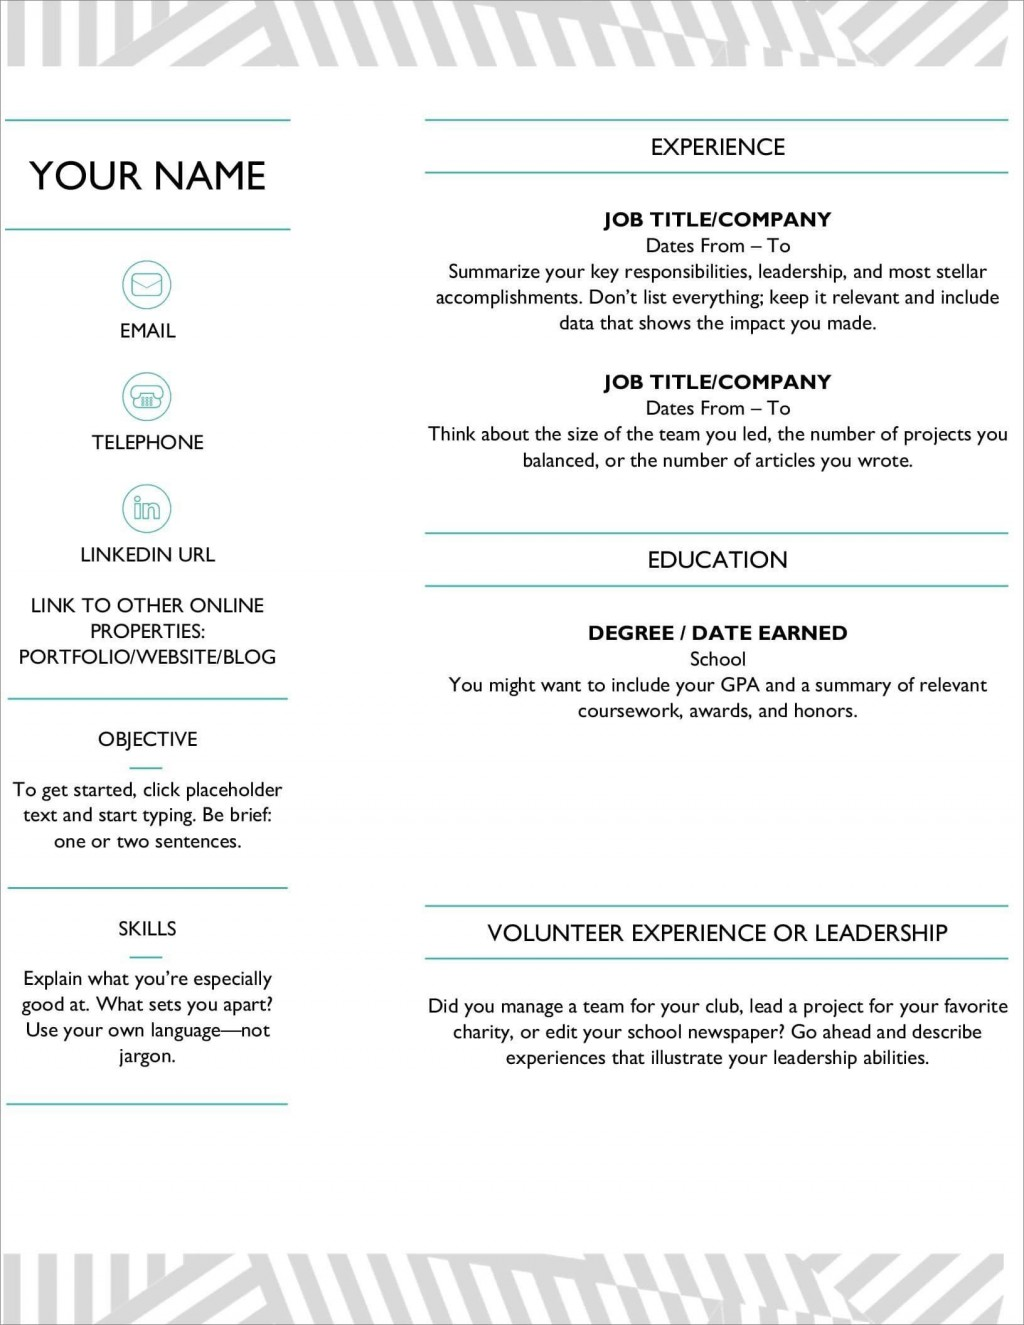 004 Exceptional Resume Template On Microsoft Word Picture  Sample 2007 Cv 2010Large